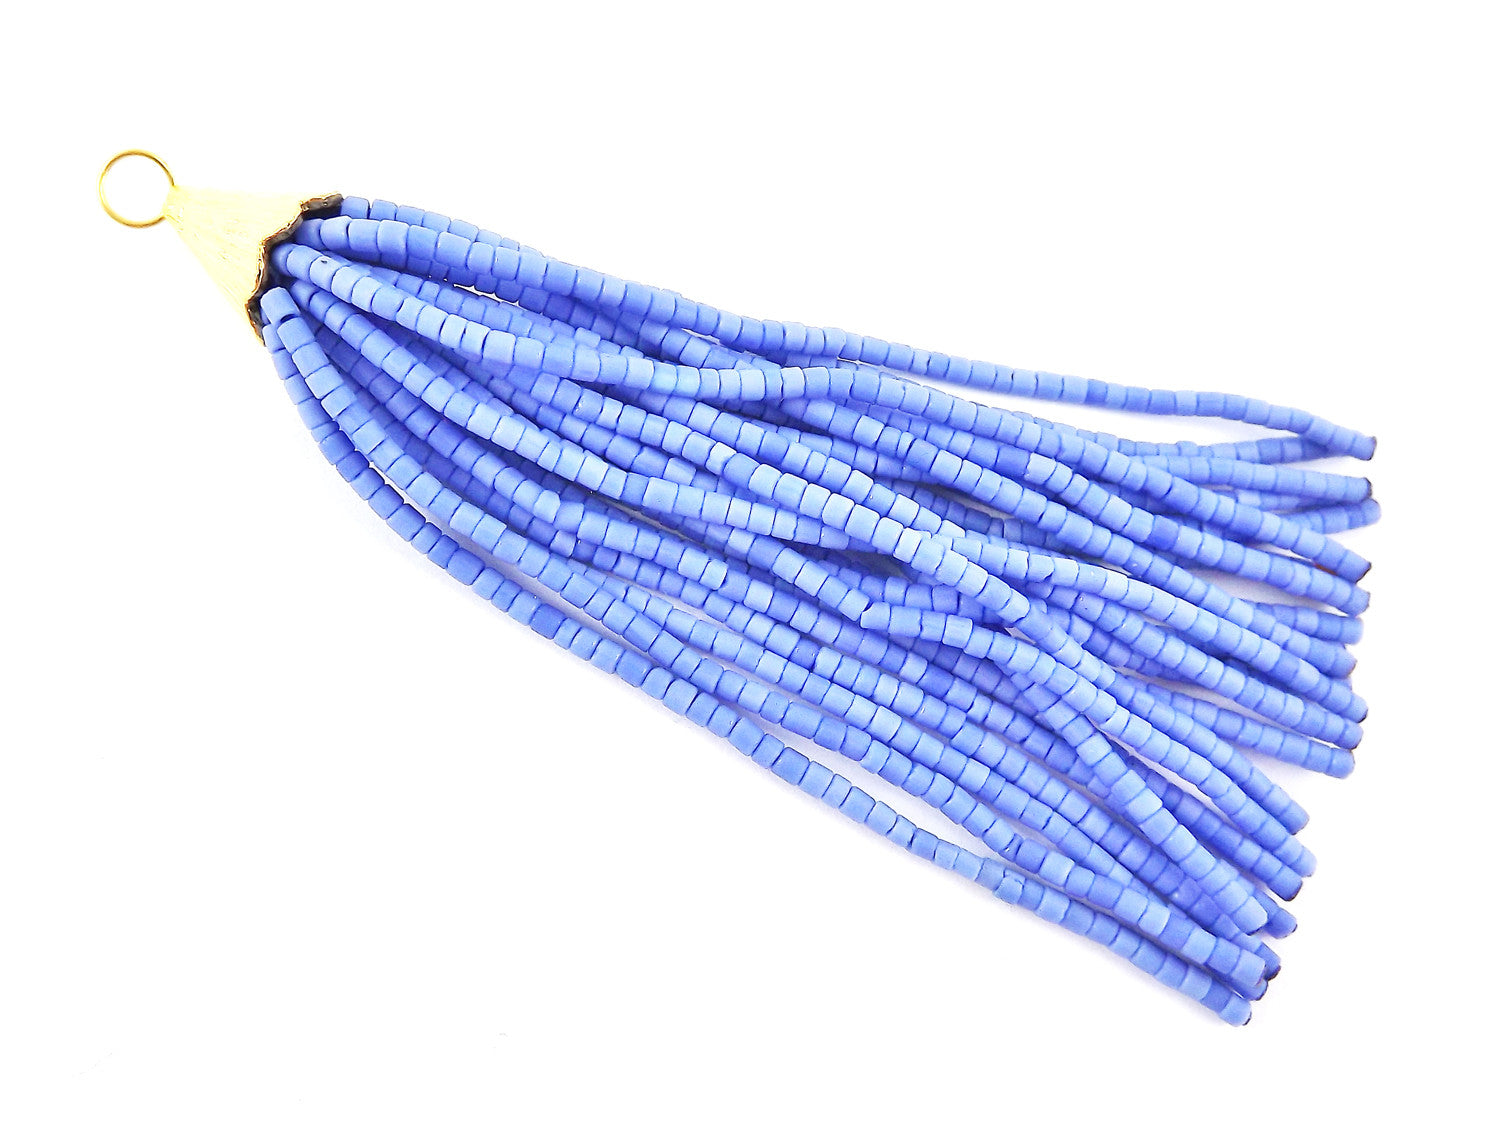 Cornflower Blue Afghan Tibetan Heishi Tube Beaded Tassel - Handmade - Textured 22k Matte Gold Plated Cap - 92mm = 3.62inches -1PC